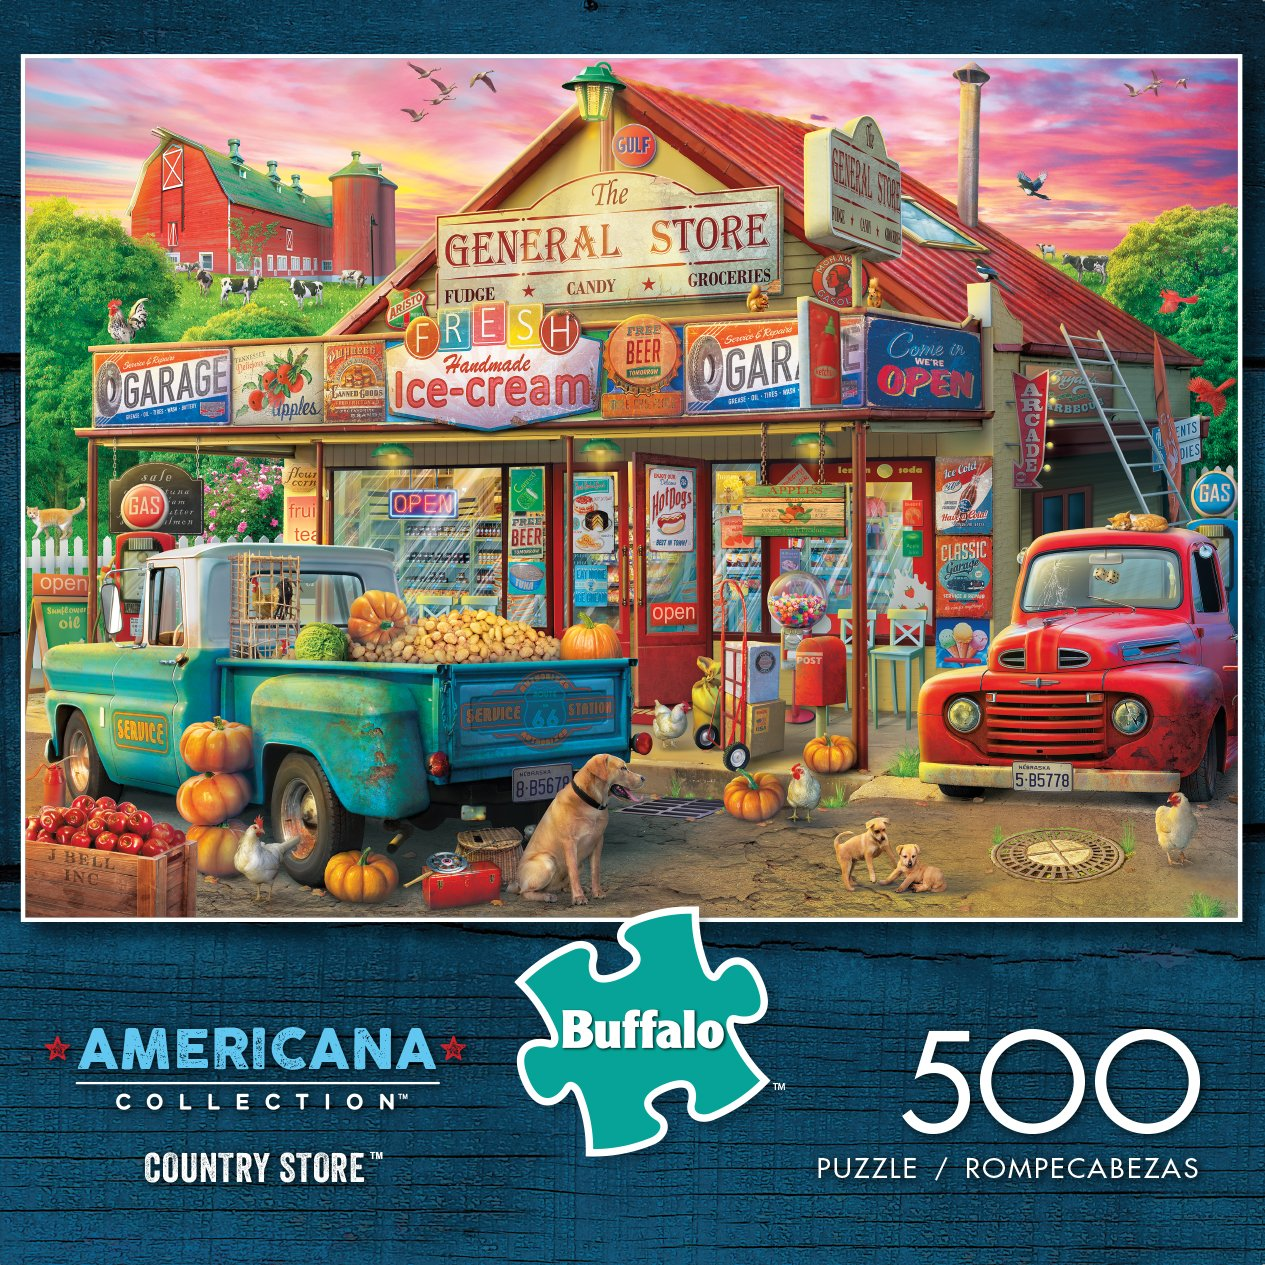 Buffalo Games - Americana Collection - Country Store - 500 Piece Jigsaw Puzzle by Buffalo Games (Image #2)